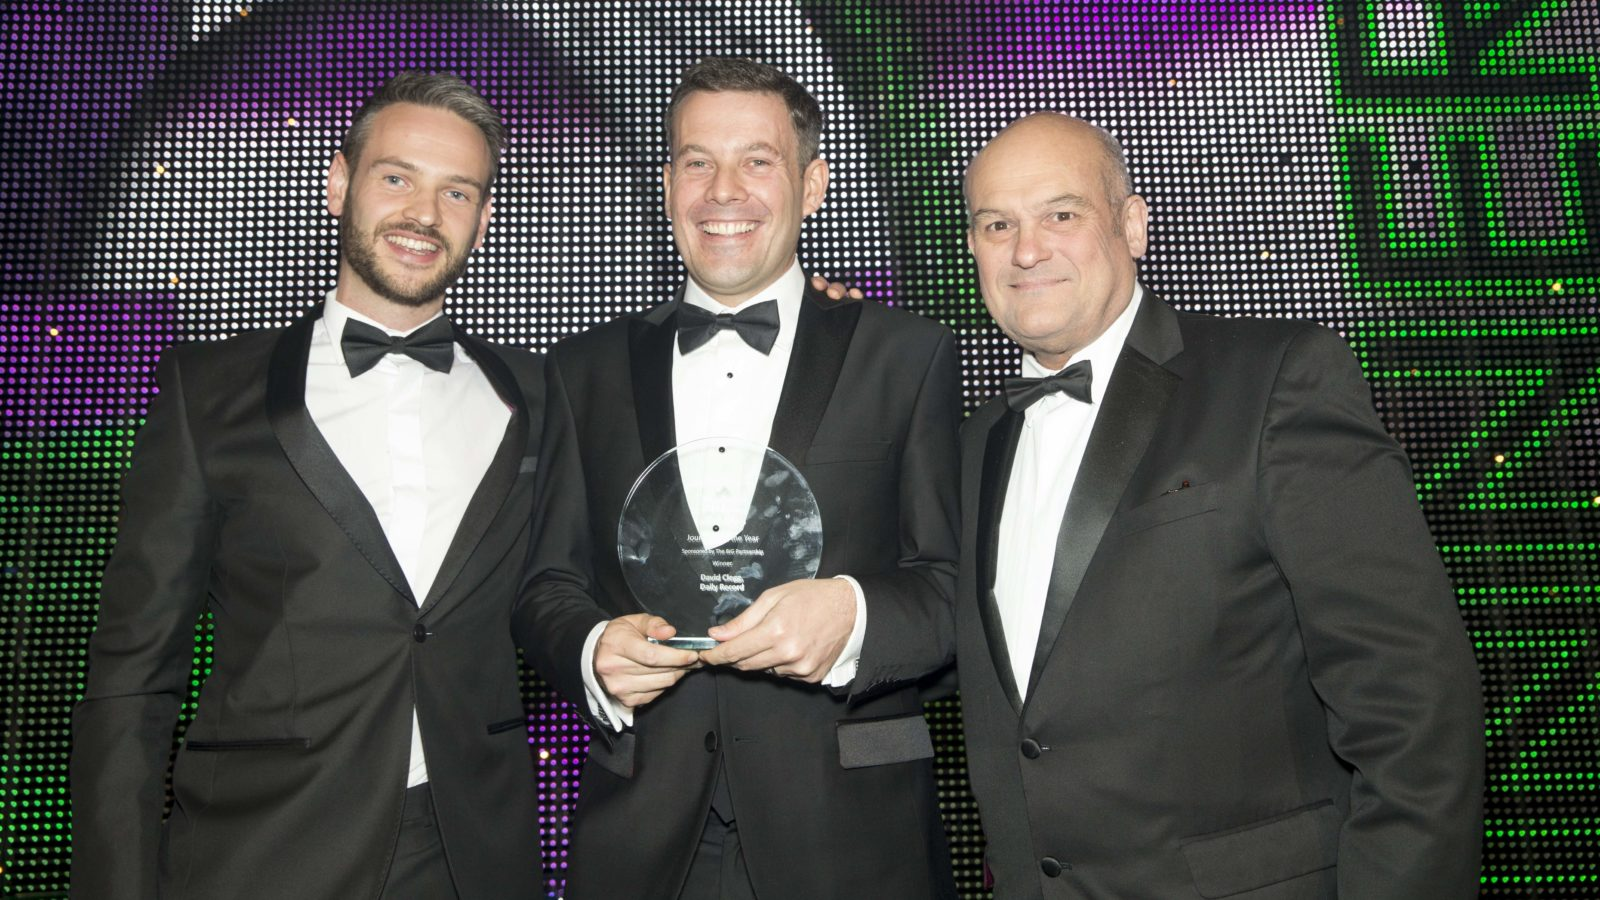 Journalist of the Year Sponsored by The BIG Partnership - @BIGPartnership ‏ Winner David Clegg, Daily Record